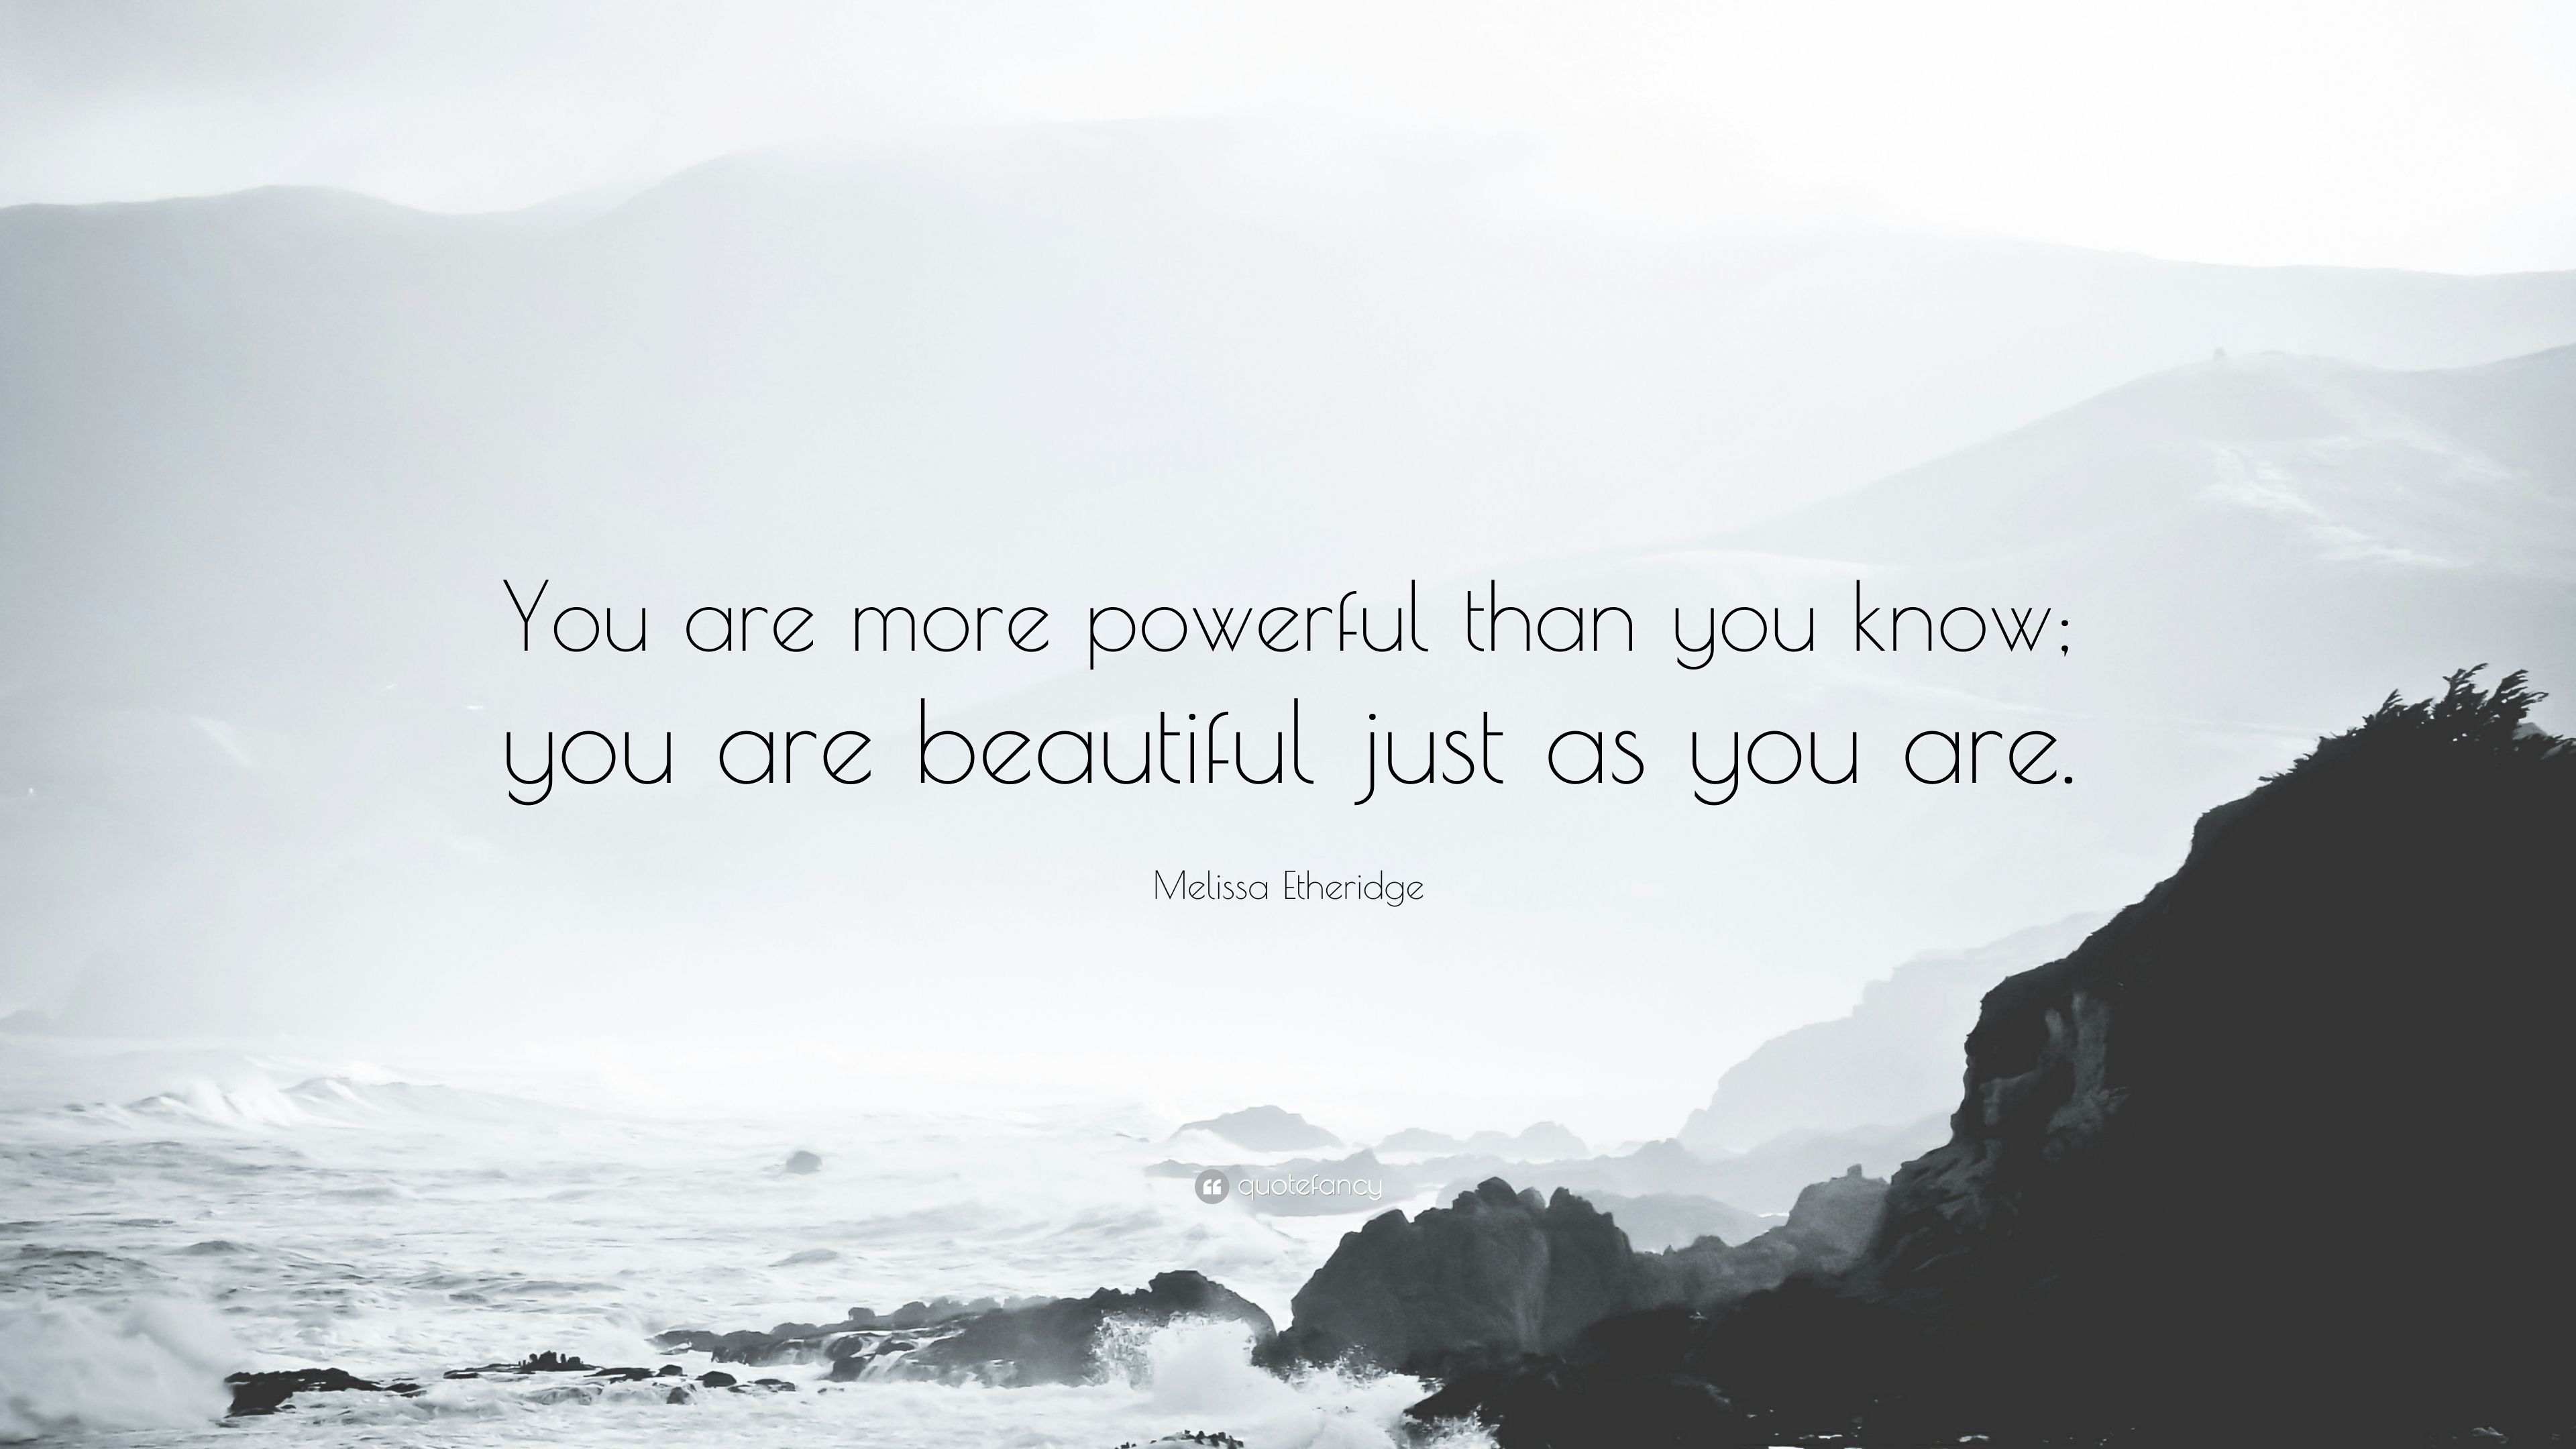 Top 45 Empowering Women Quotes And Beauty Quotes For Her ... |Powerful Beauty Quotes